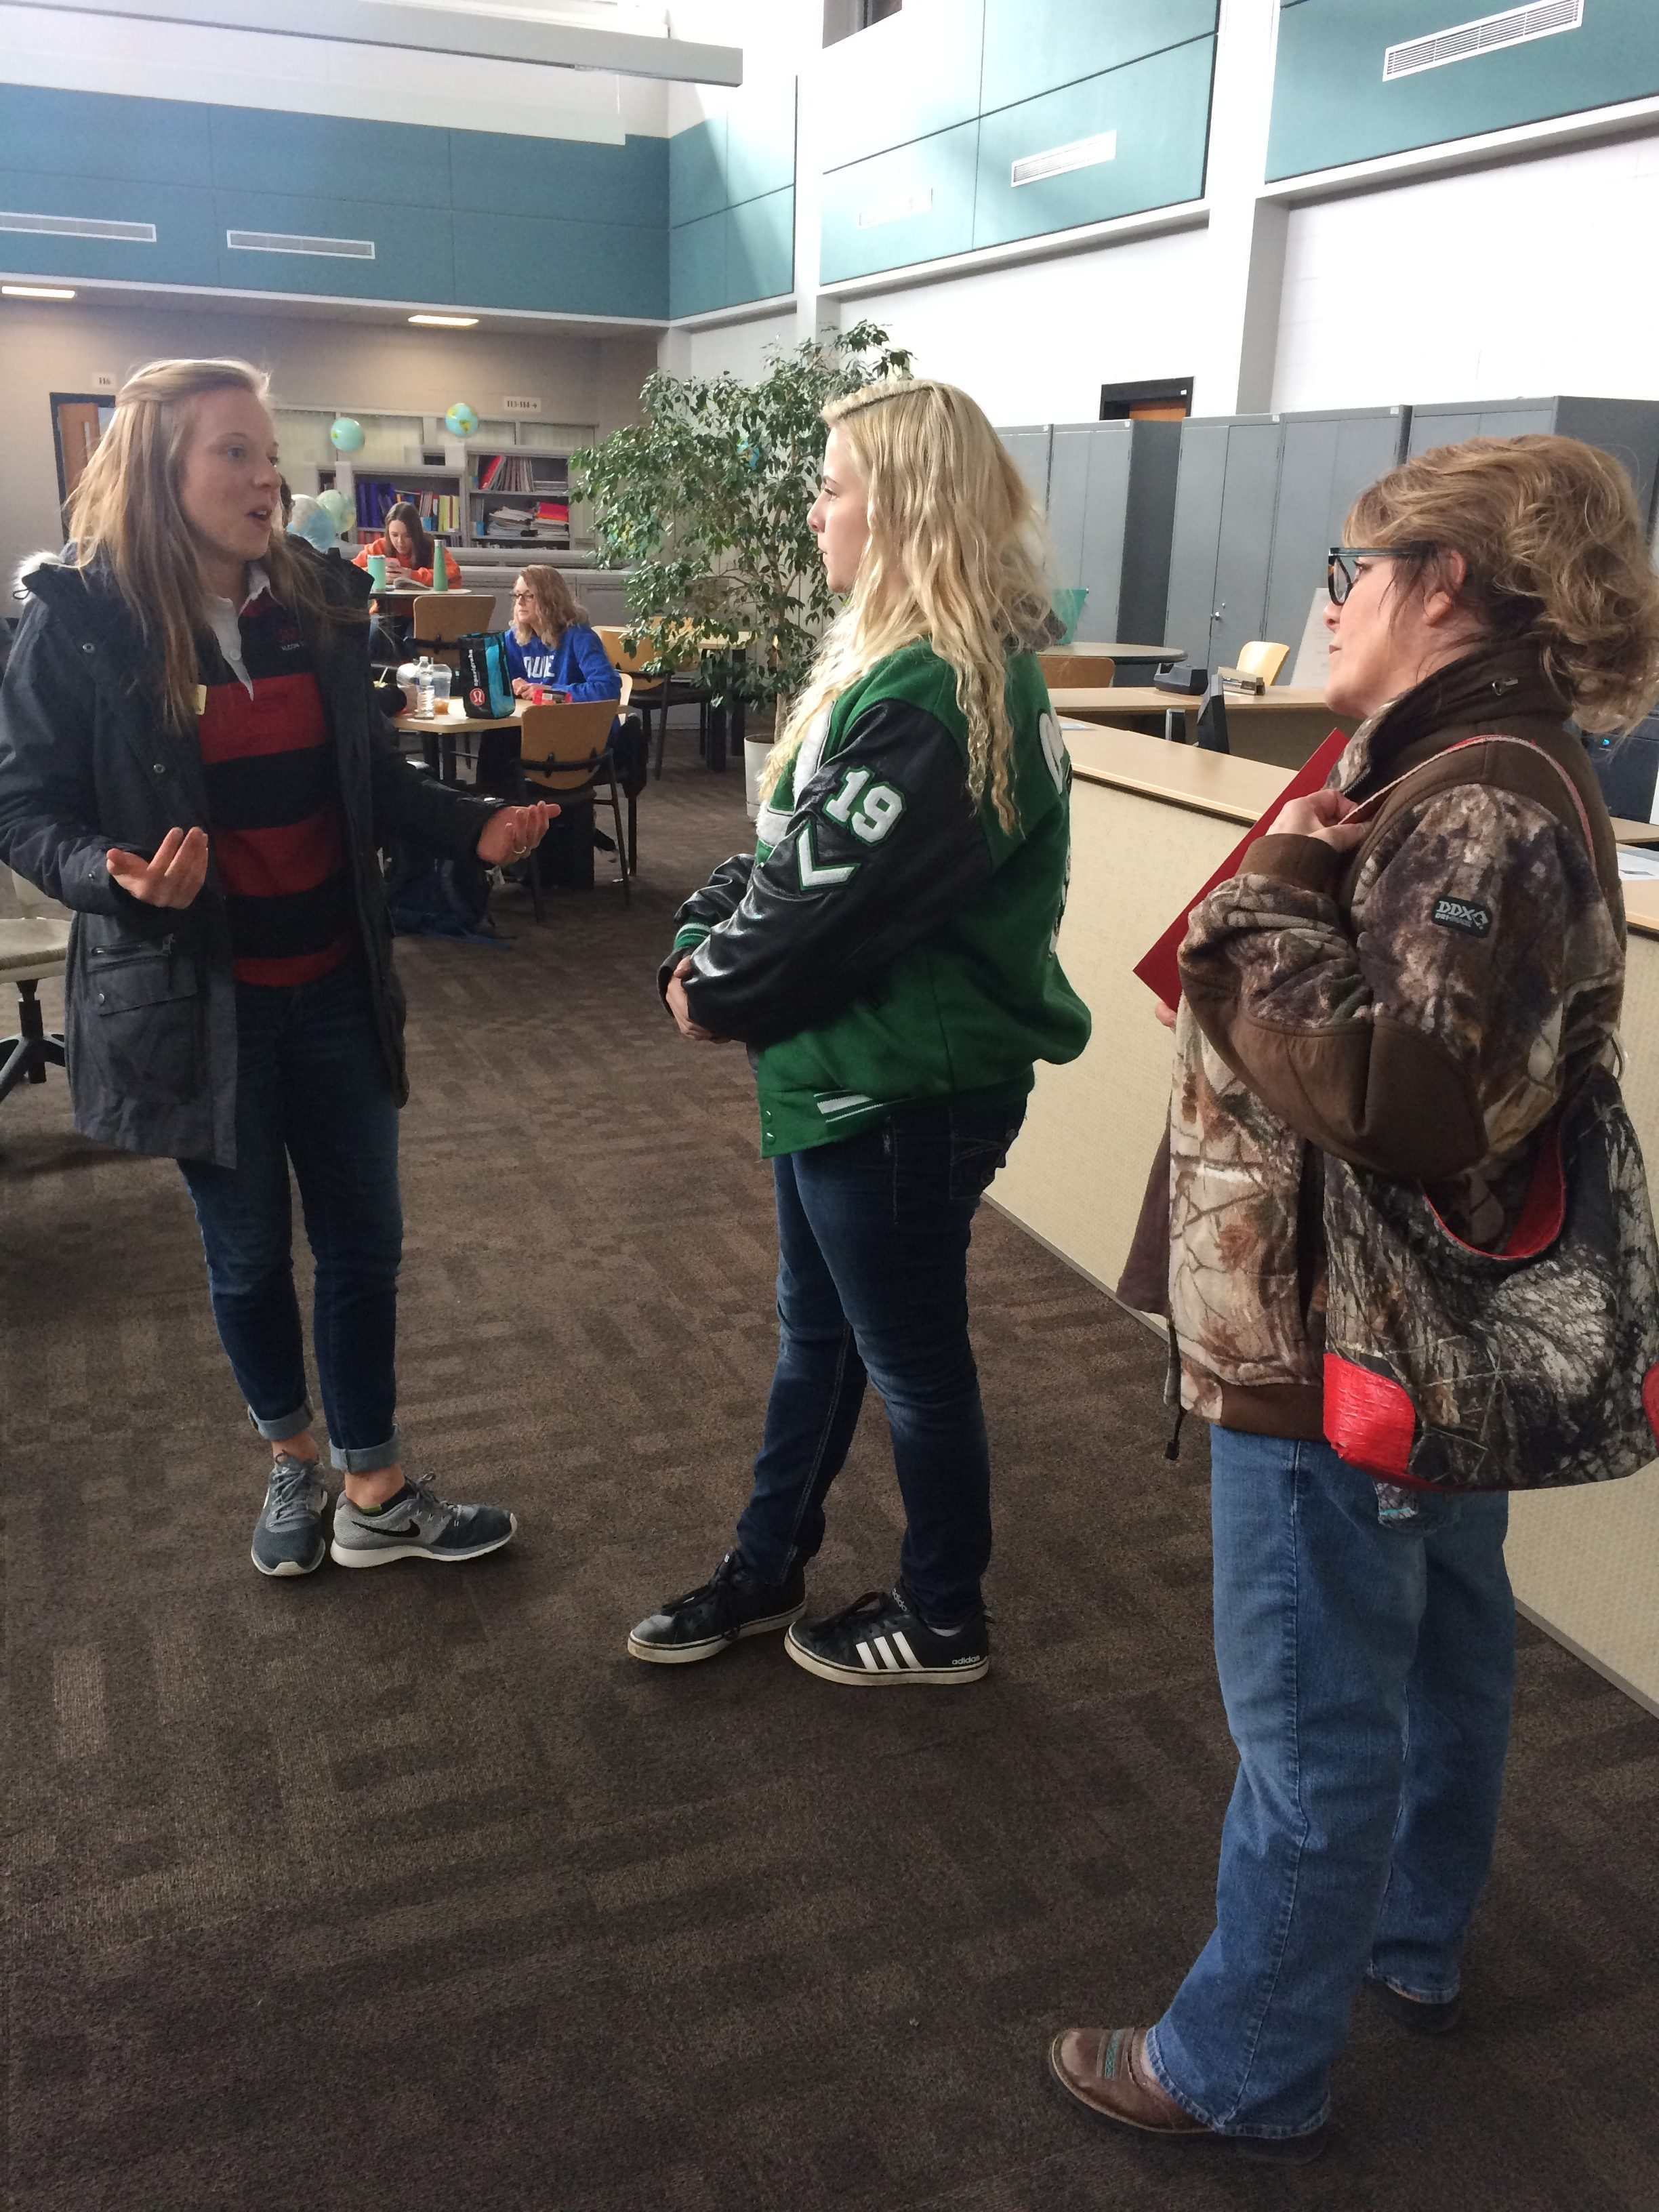 Bryanne Stites (left) is a Falcon guide at UWRF. She gave a tour to Ashley Ertel and her mom Becky Swagger on March 21.